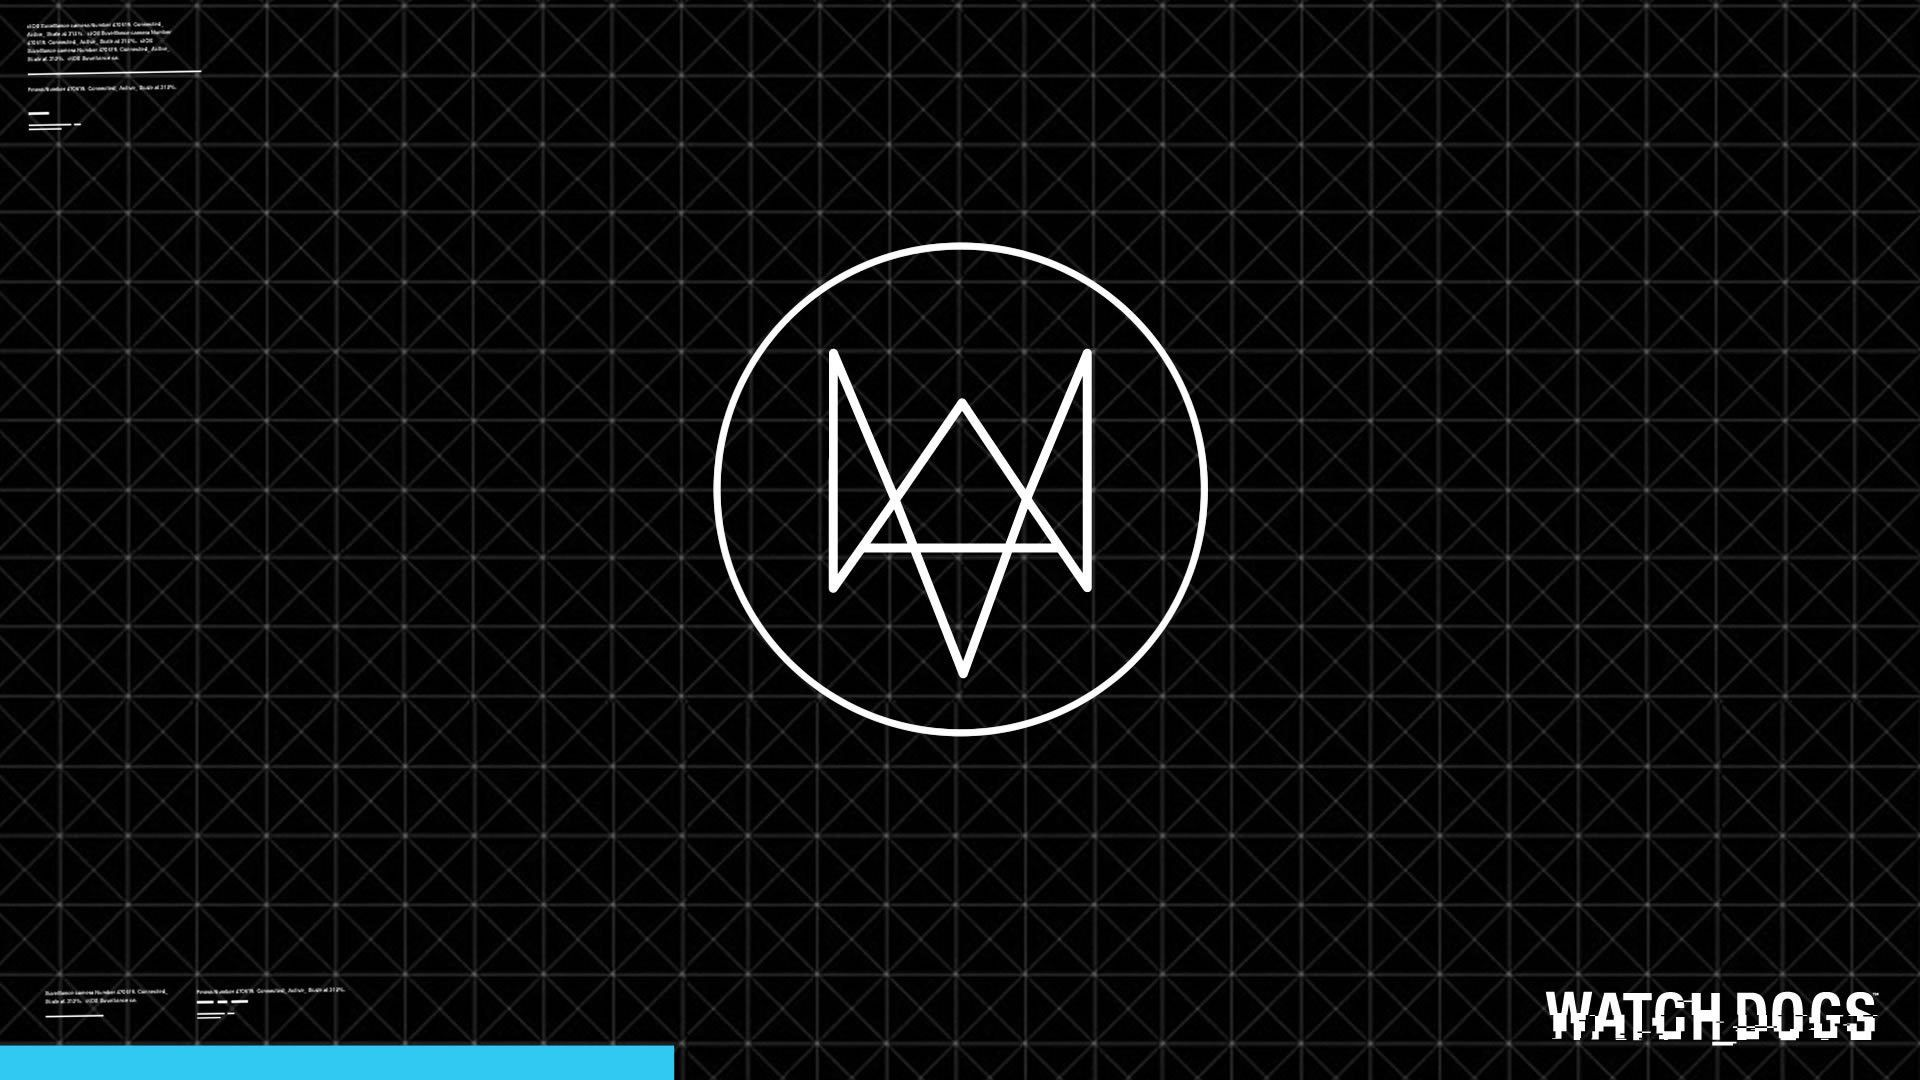 Watch Dogs Logo Wallpaper 77 Images Watch Dogs Game Logo Wallpaper Hd Watch Dogs